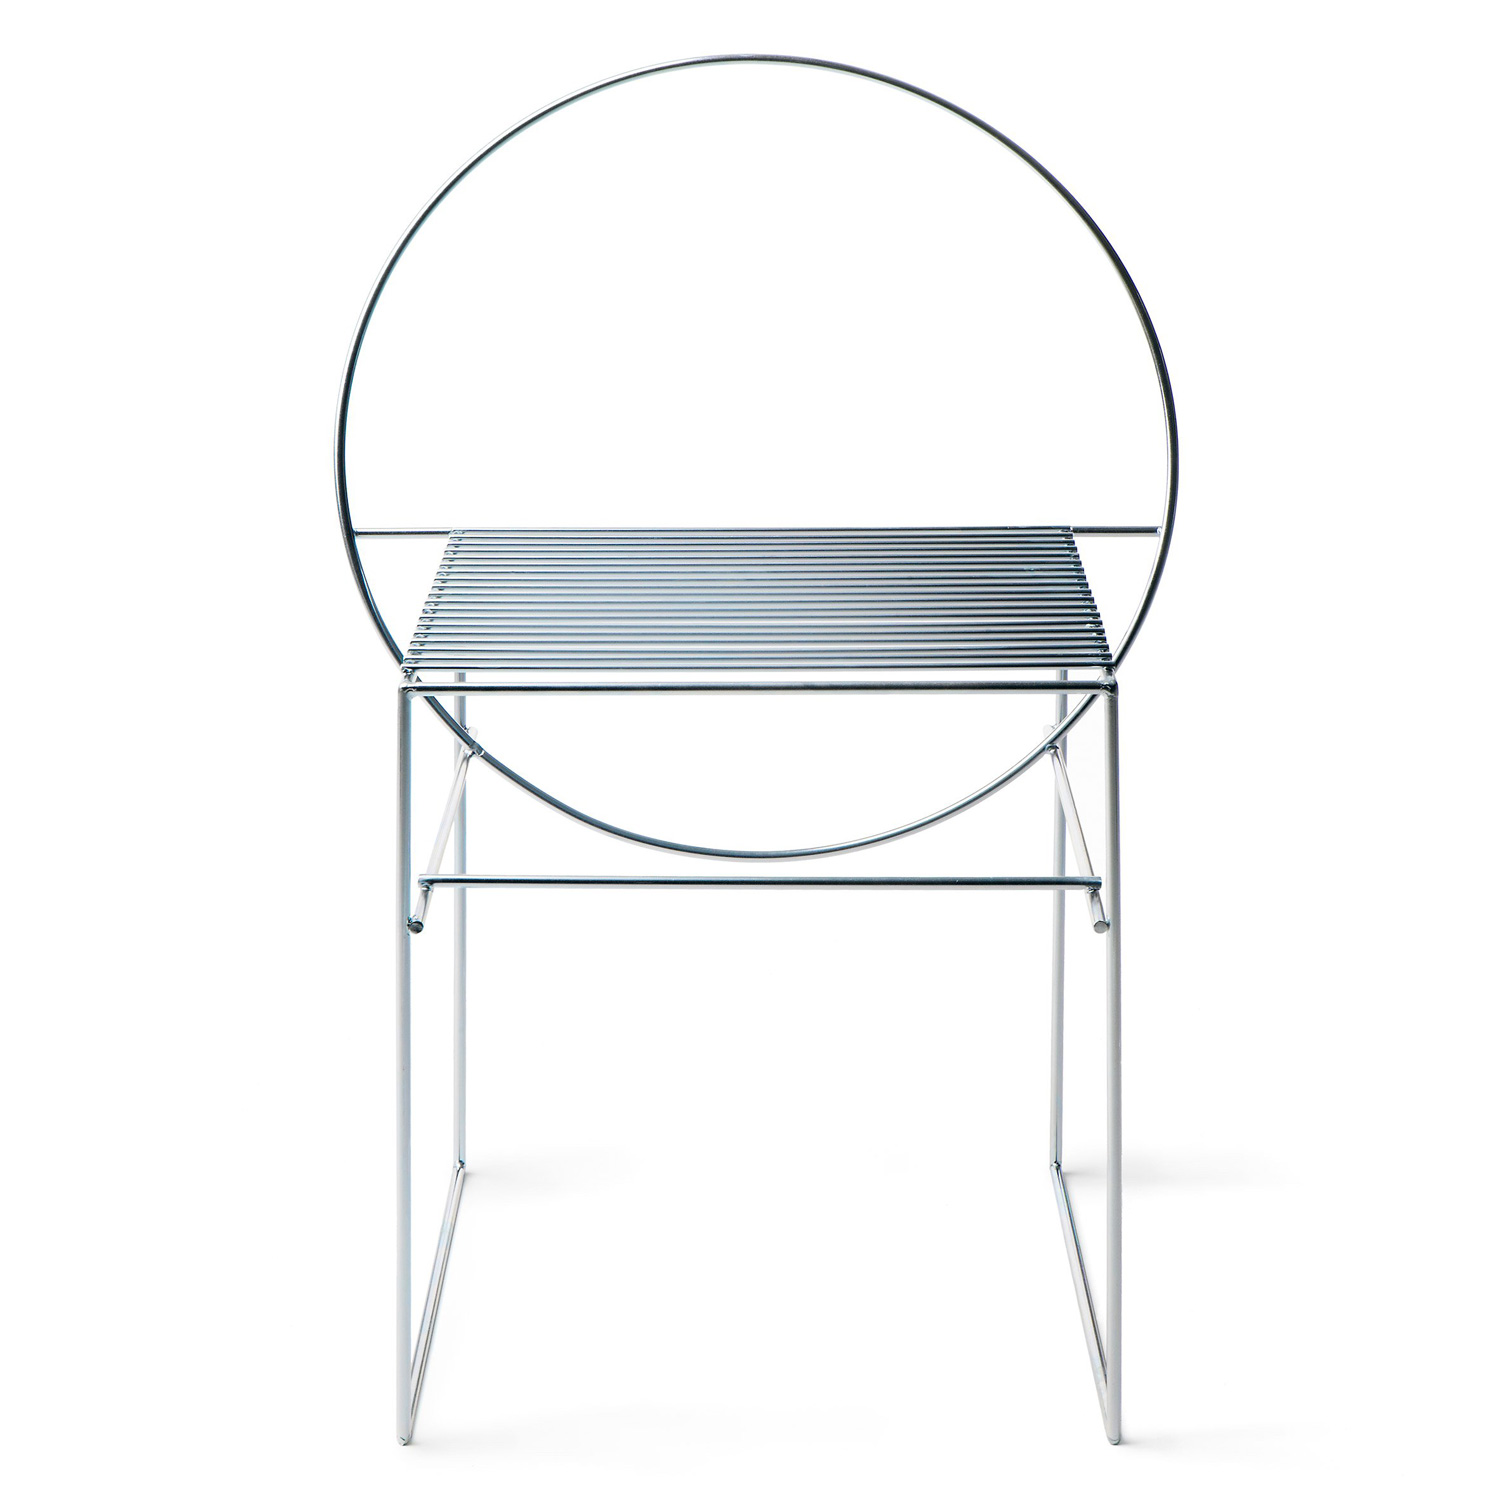 Aalto University Students Create 12 Chairs Using Steel Rods at Stockholm Furniture Fair 2017 | Yellowtrace